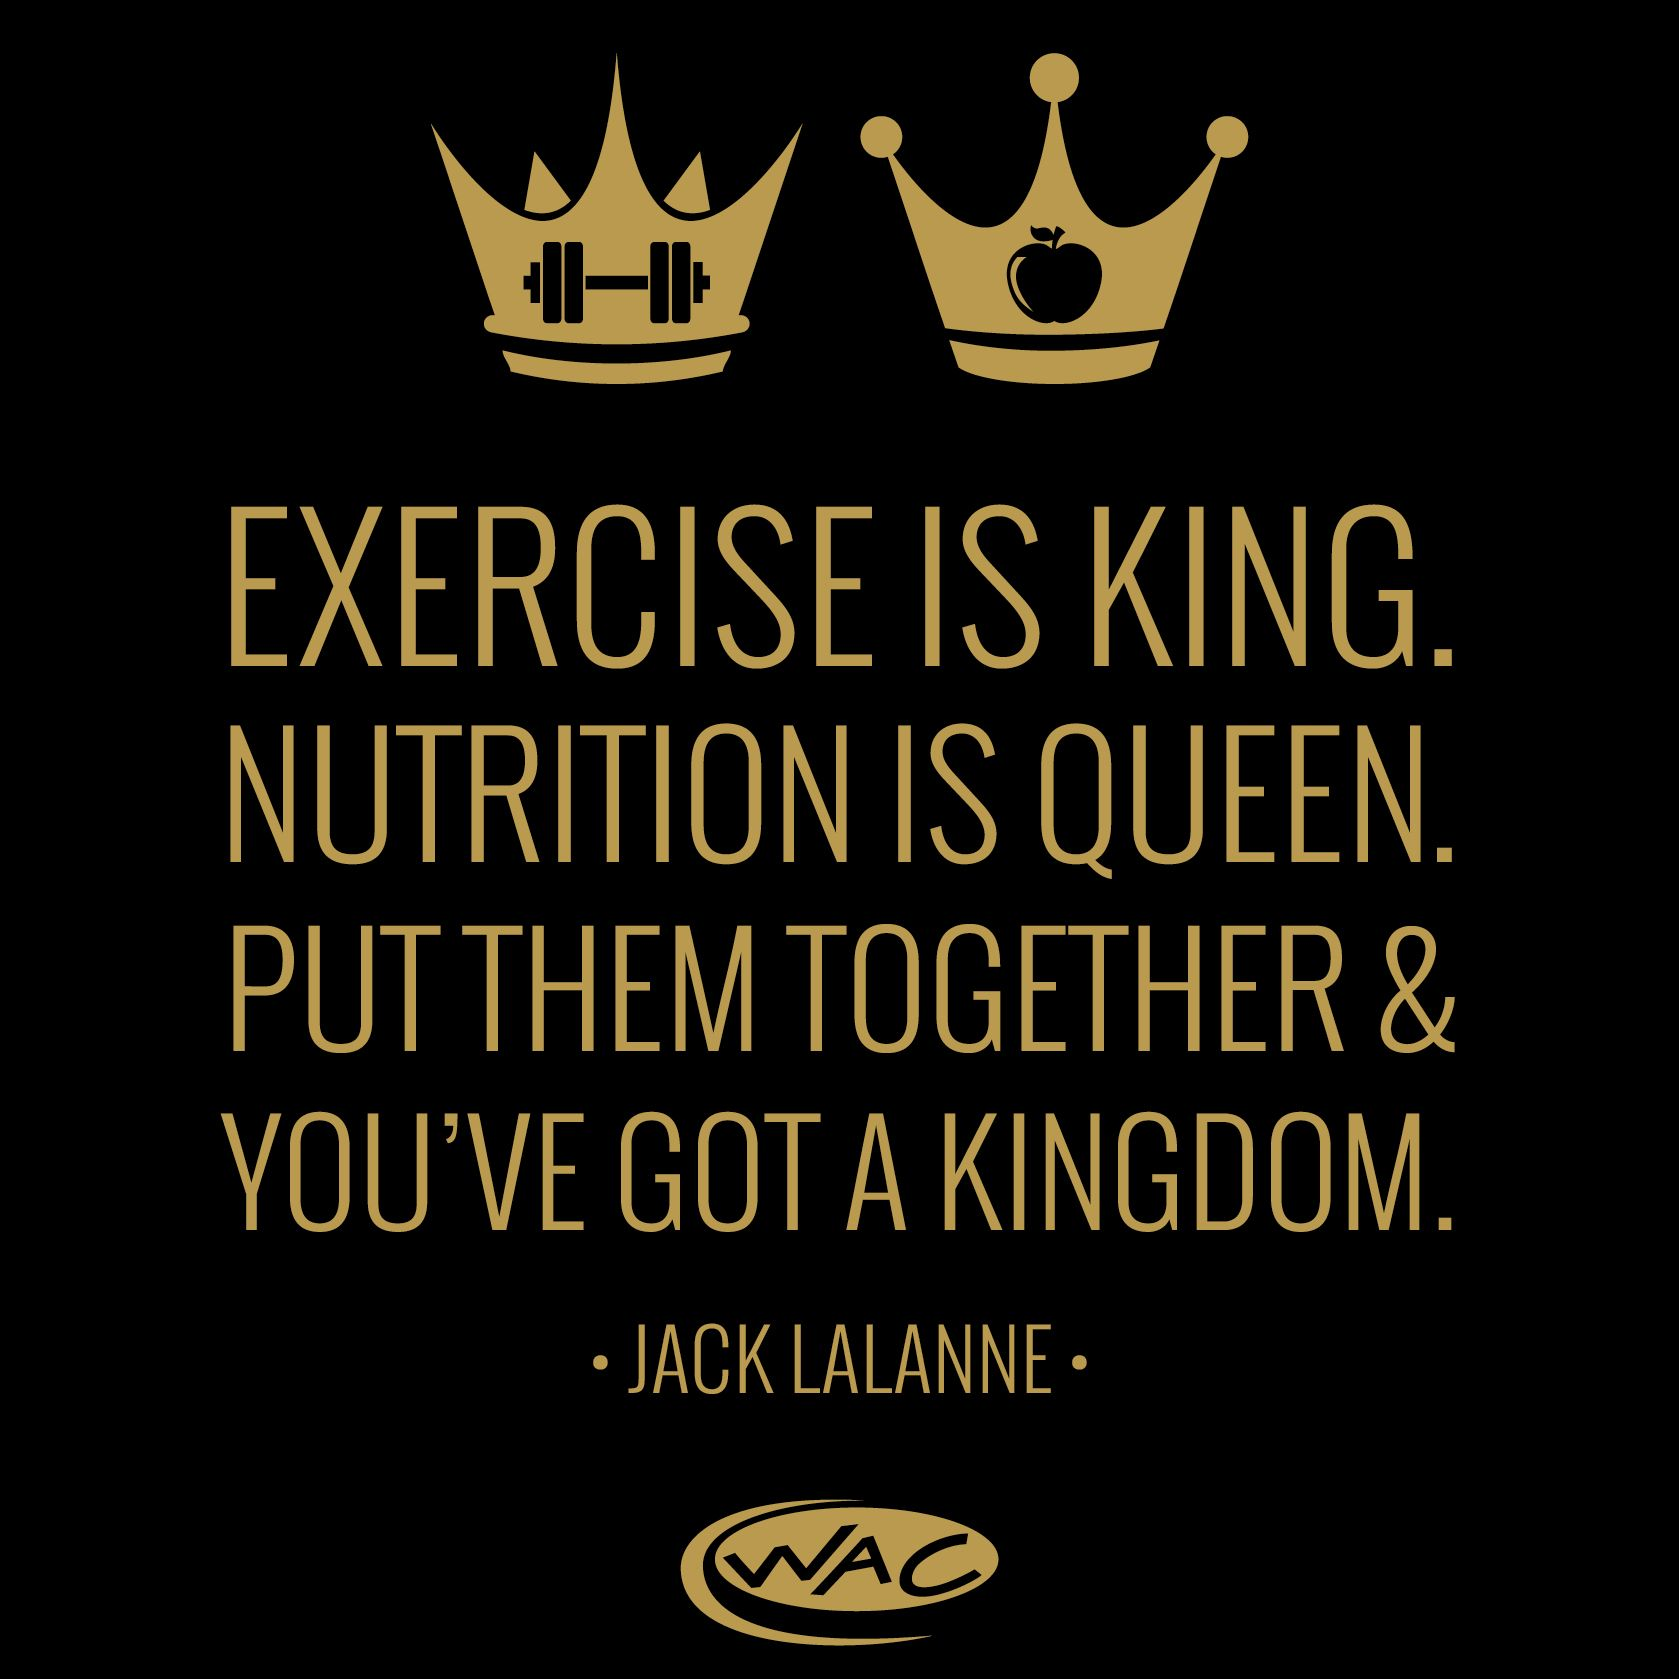 Exercise is king nutrition queen gym humor